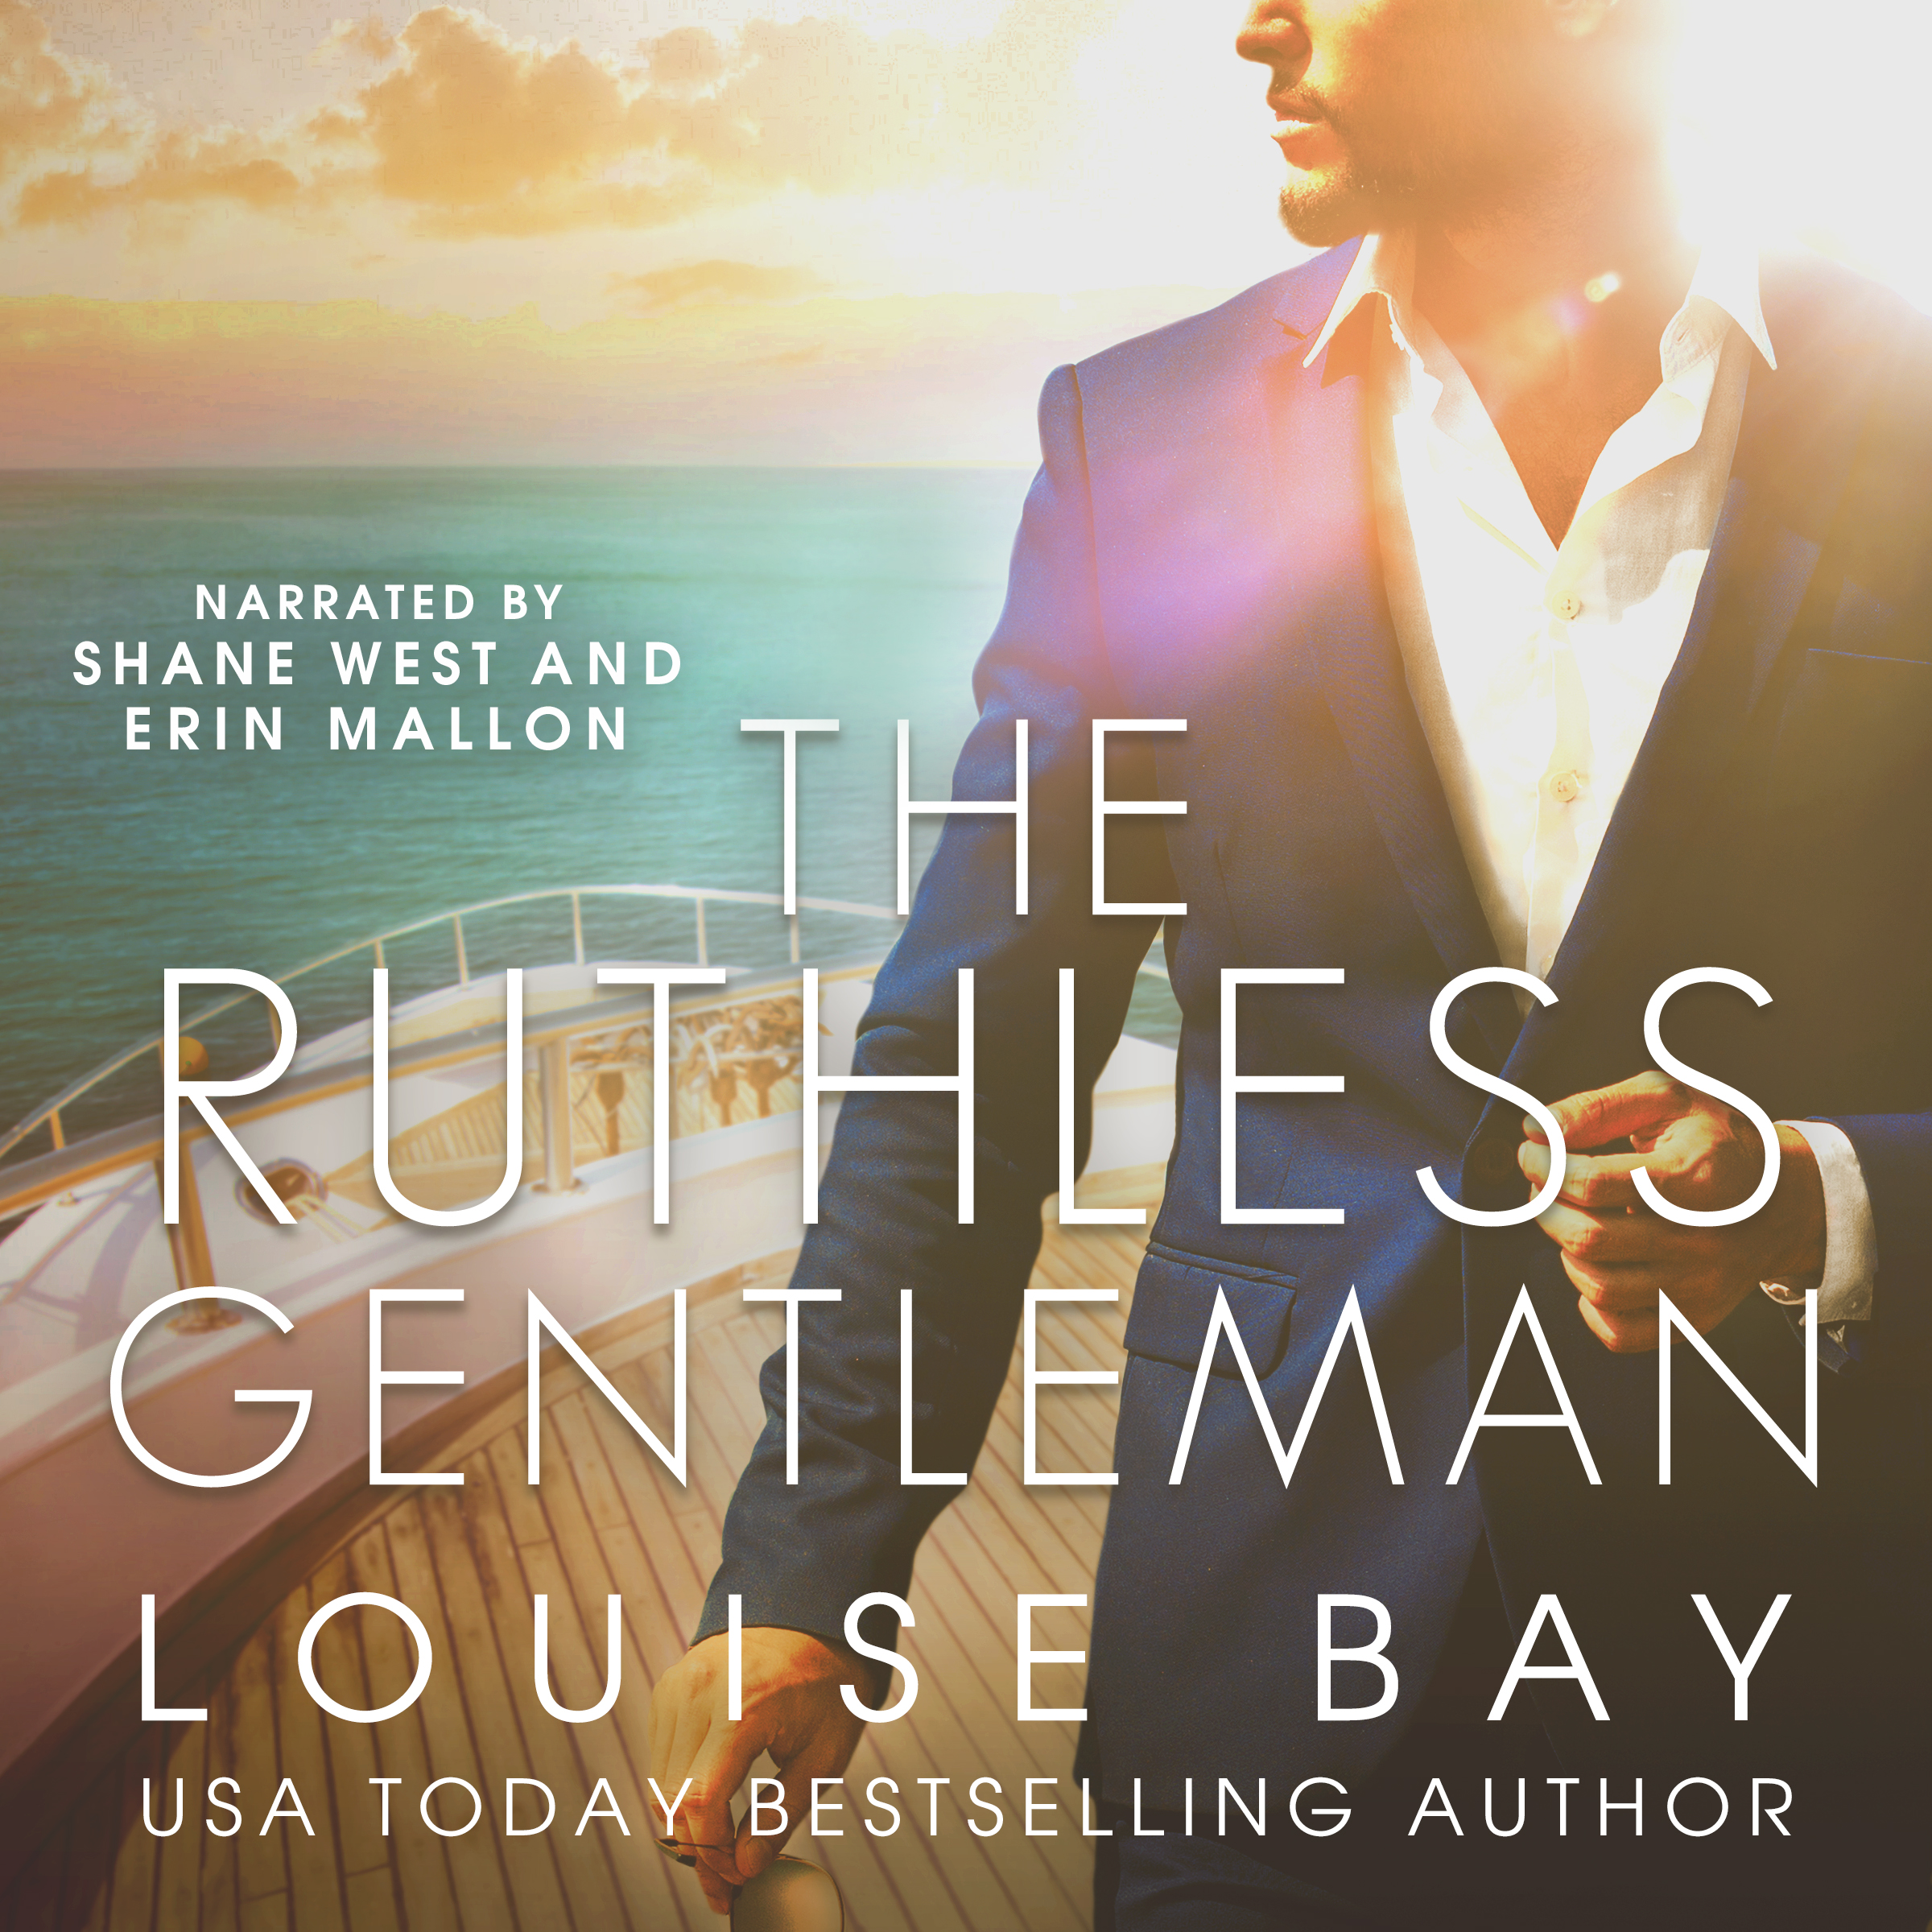 The Ruthless Gentleman audiobook by Louise Bay